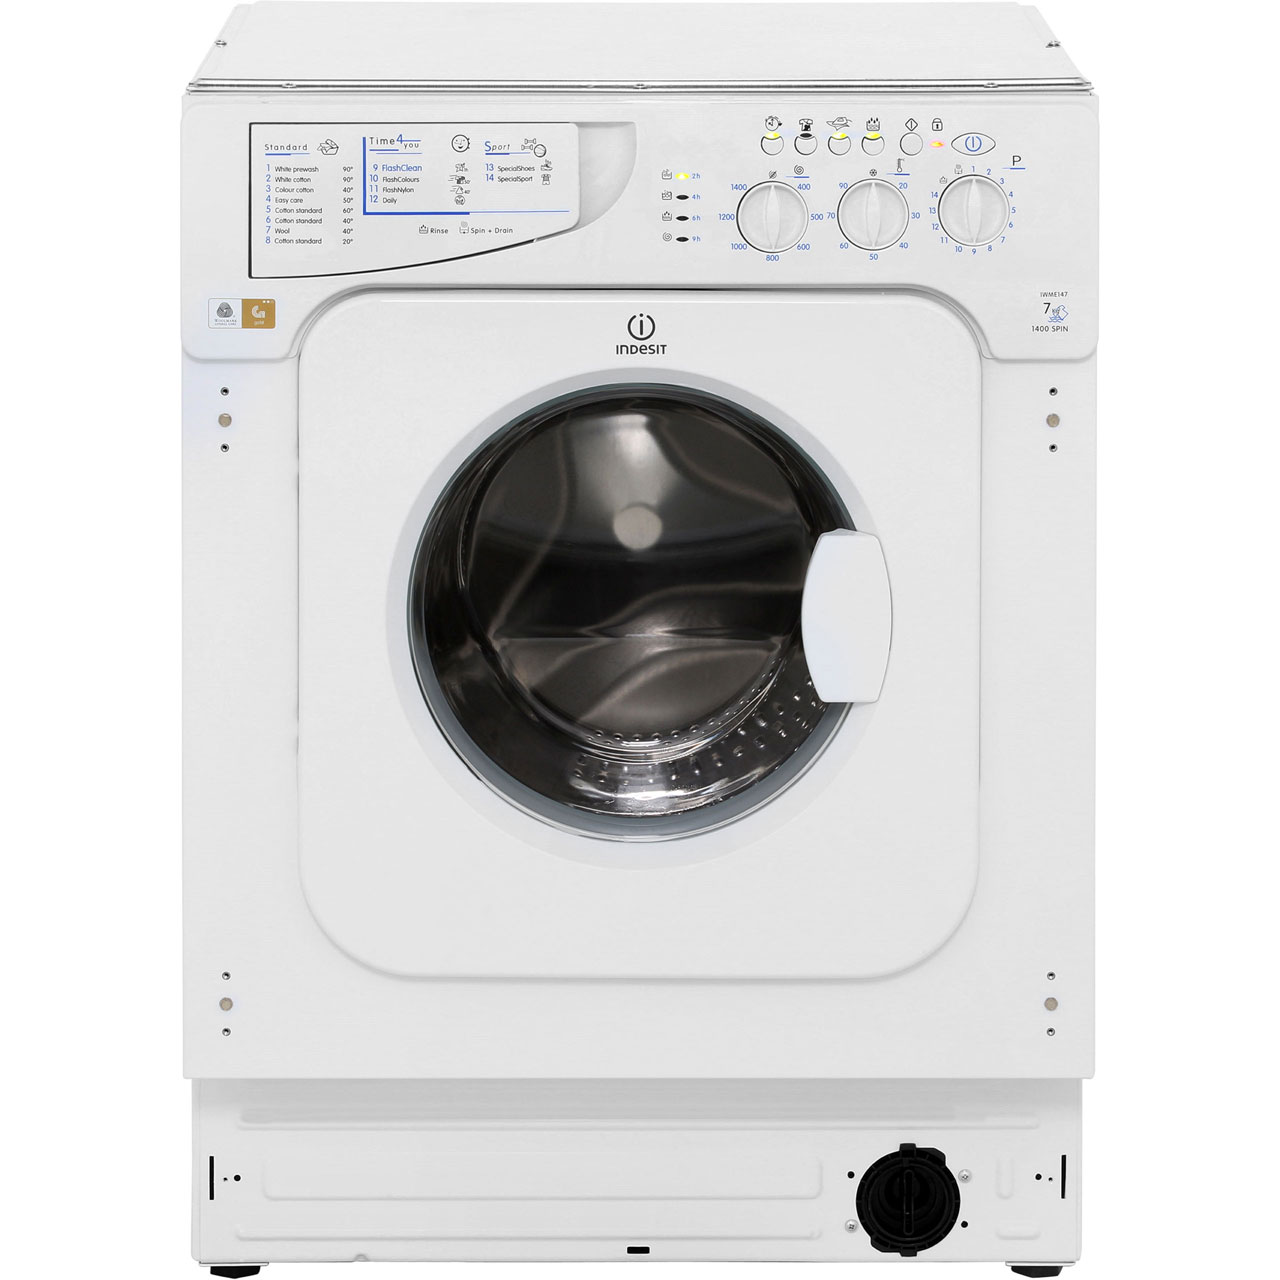 Indesit IWME147 Integrated Washing Machine in White